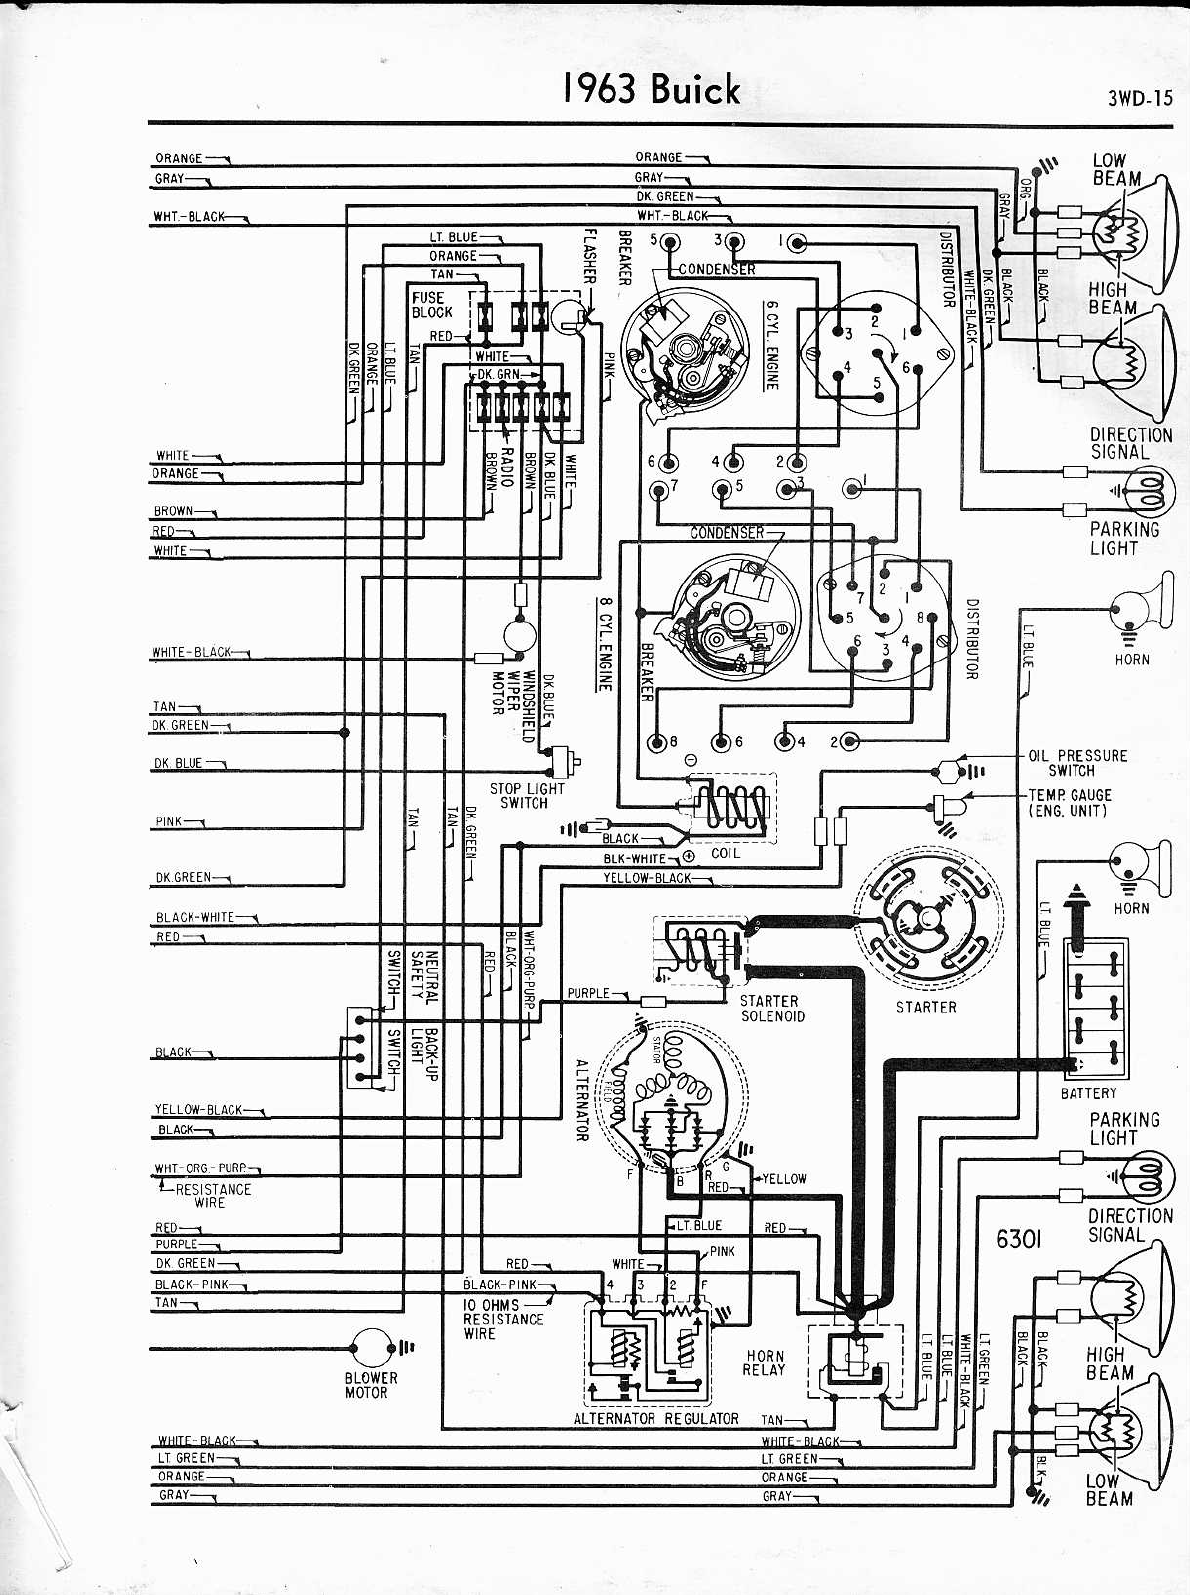 buick skylark 1963 1965 misc documents wiring diagrams pdf rh manuals co  Chrysler Alternator Wiring Diagram